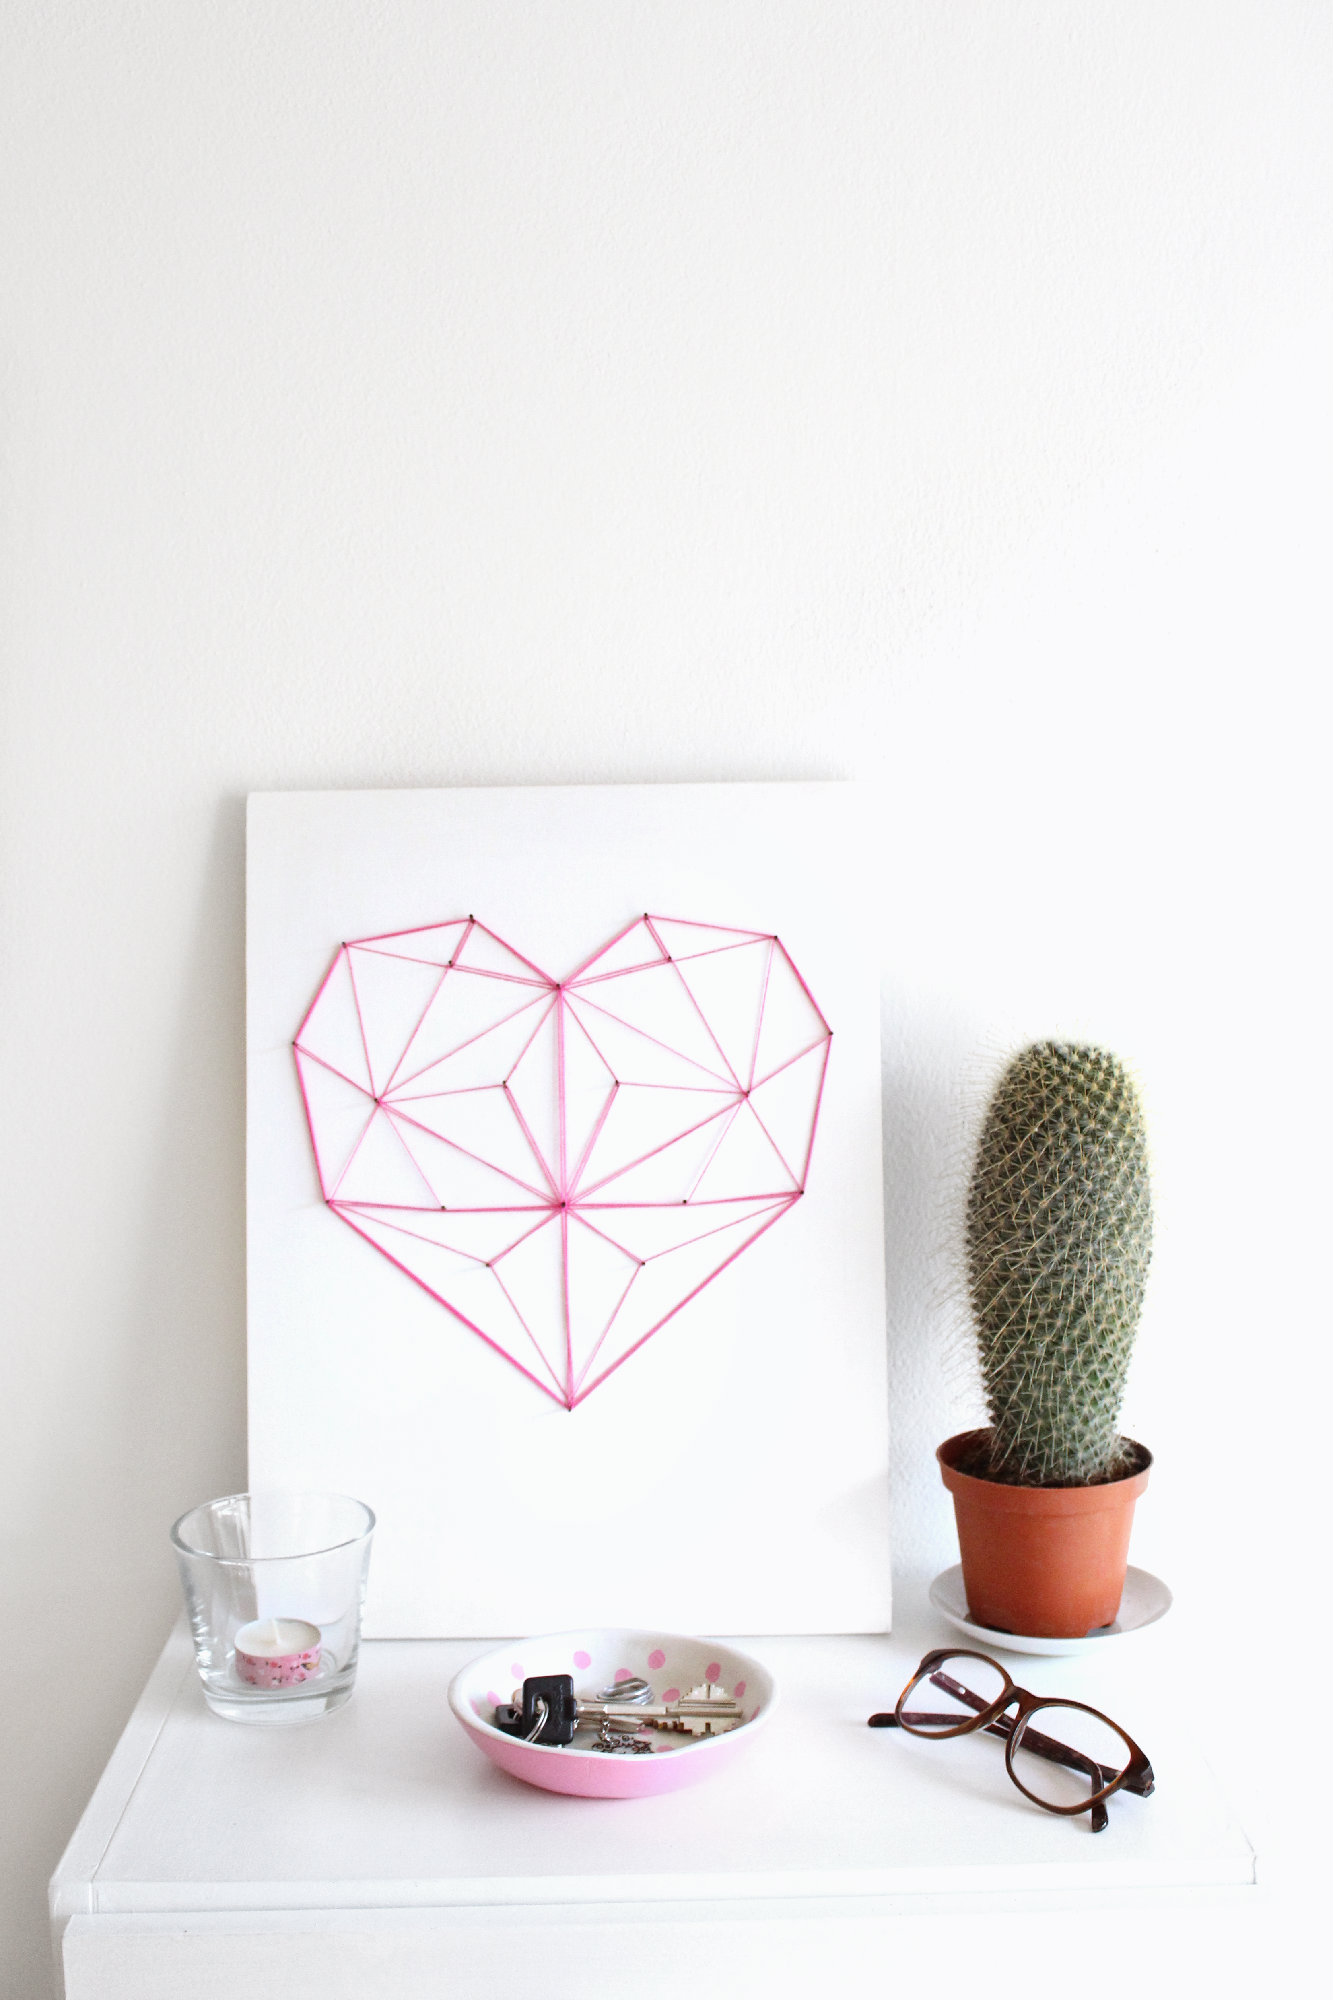 DIY geometric heart string art 13